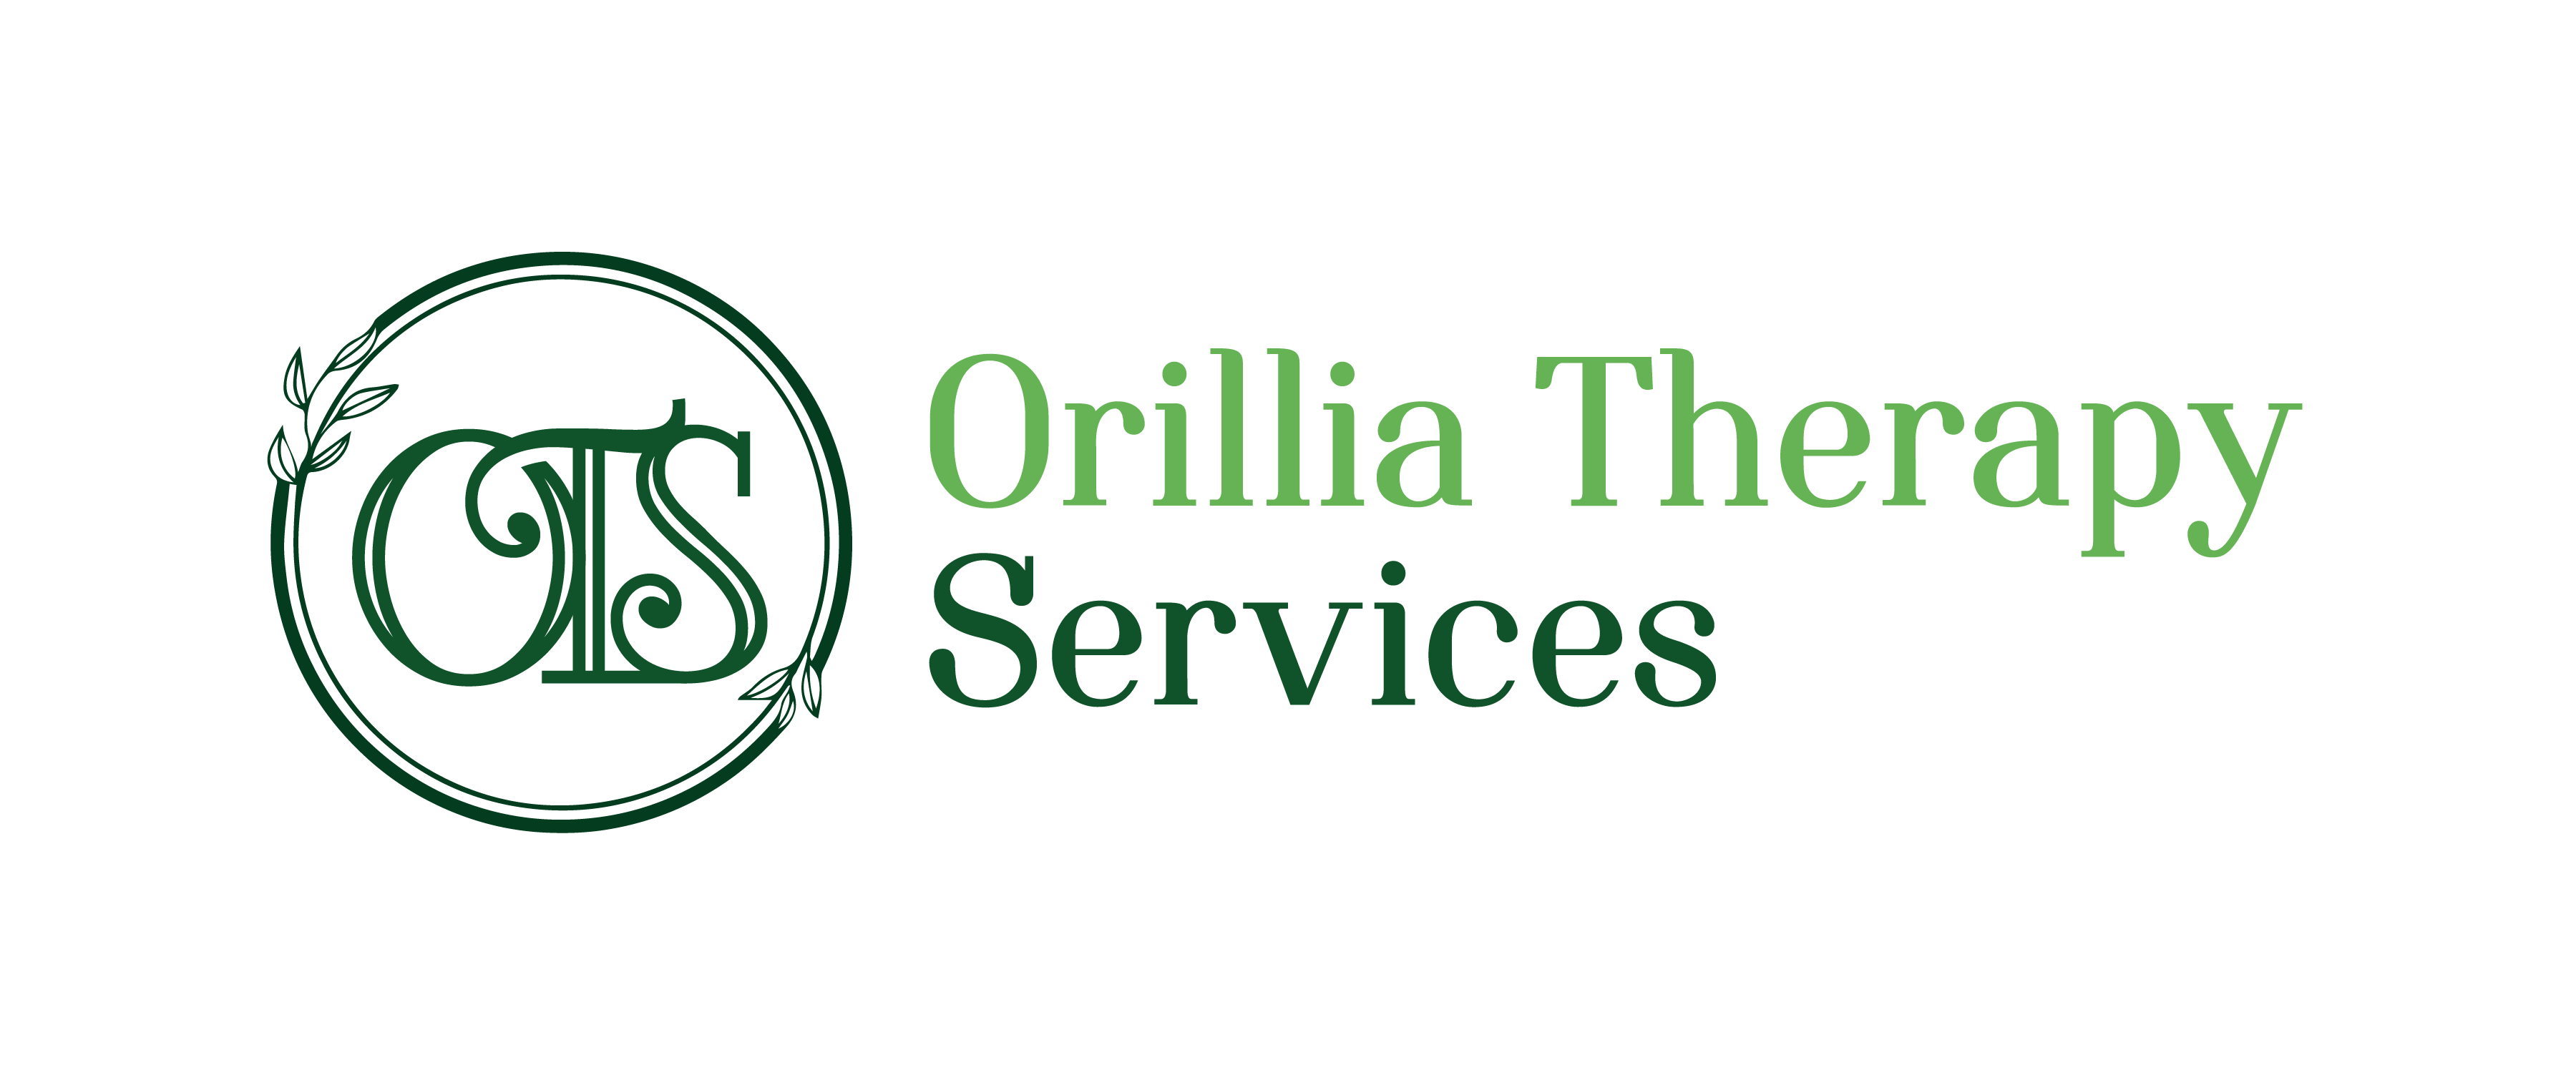 Orillia Therapy Services logo